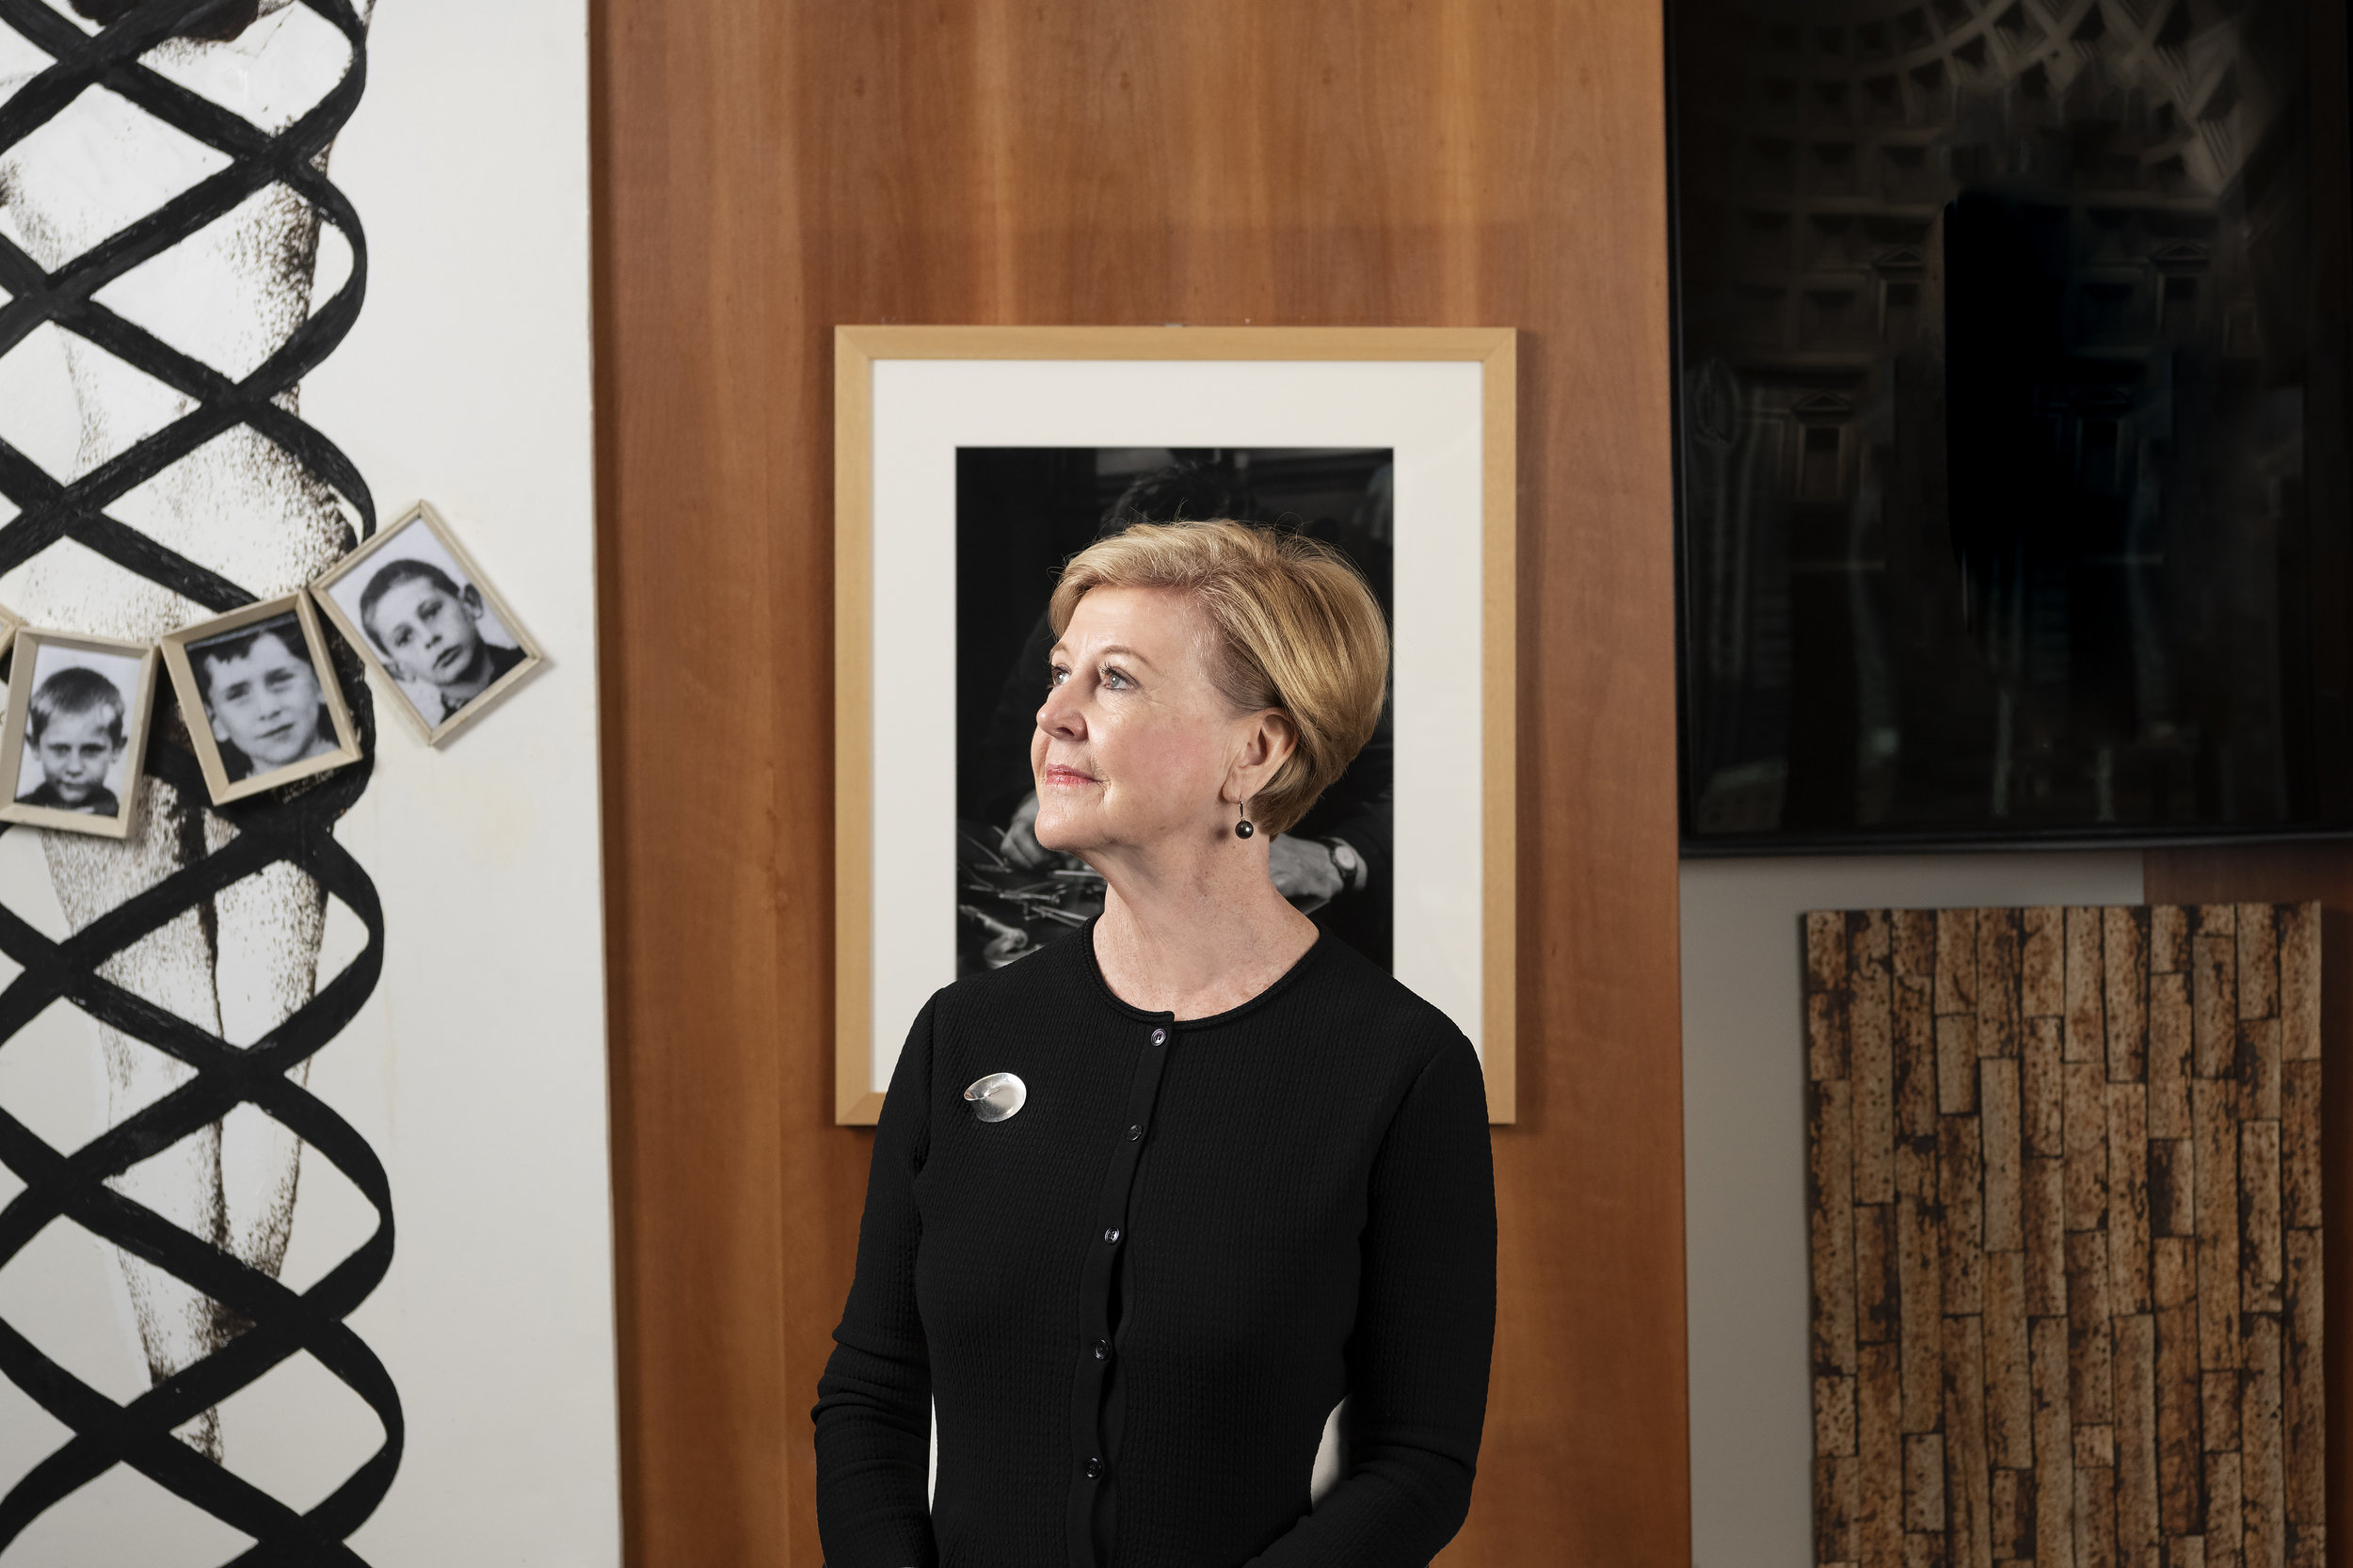 Emeritus Professor Gillian Triggs